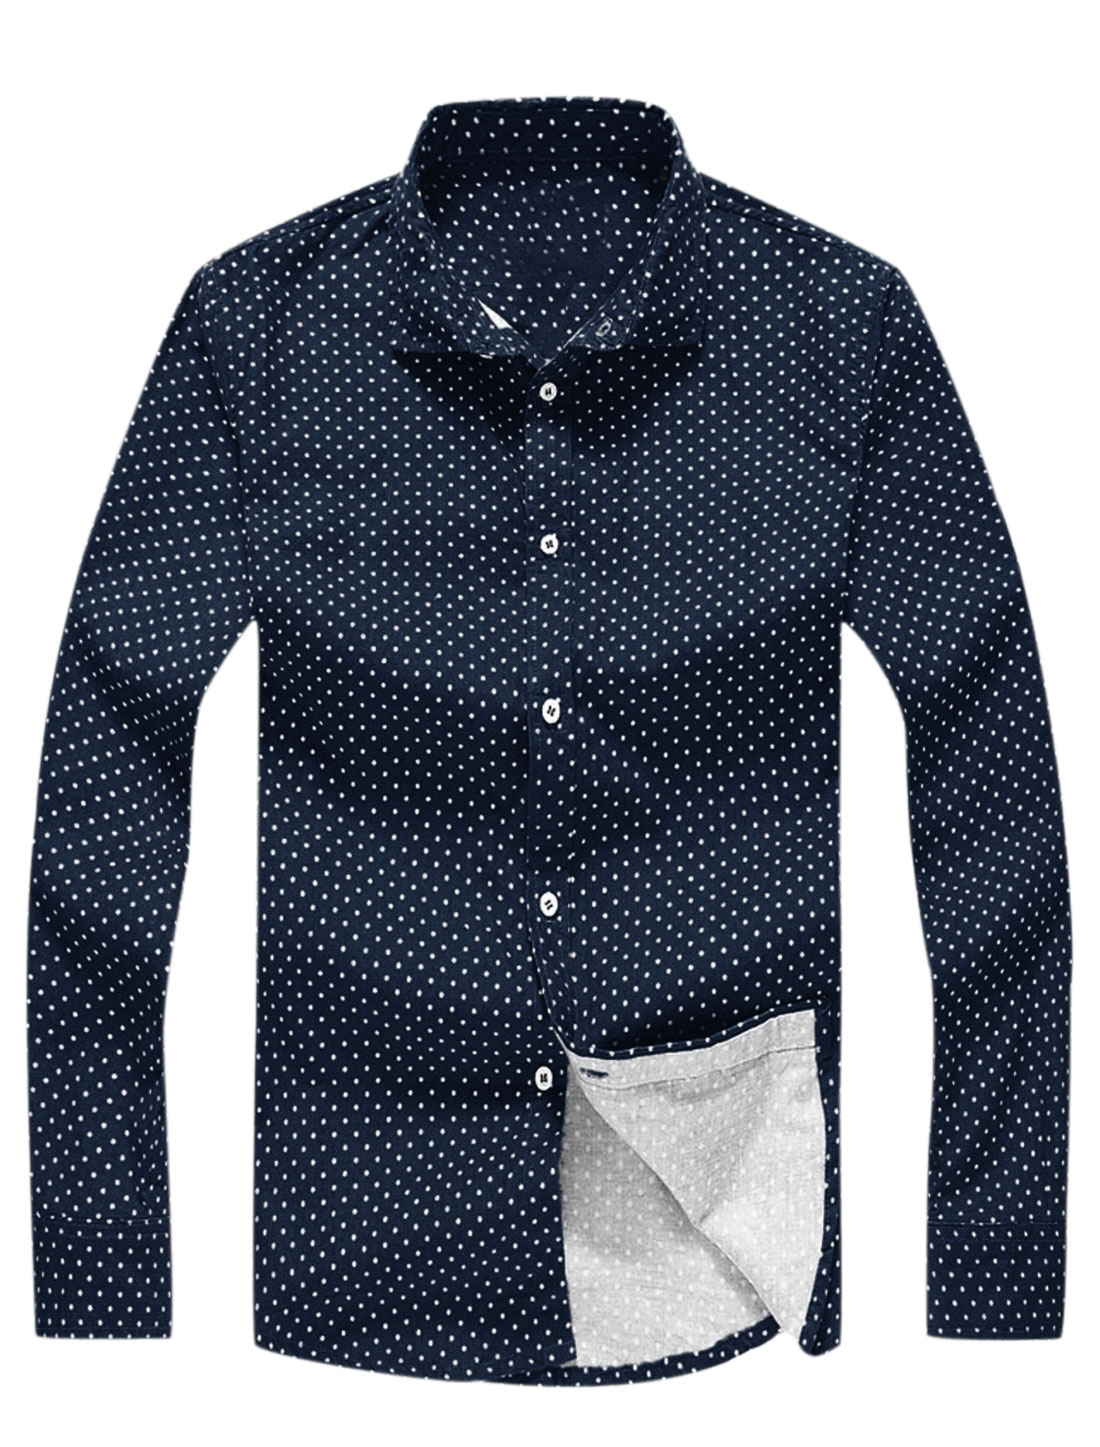 Button Closure Dots Prints Casual Shirts for Men Navy Blue S